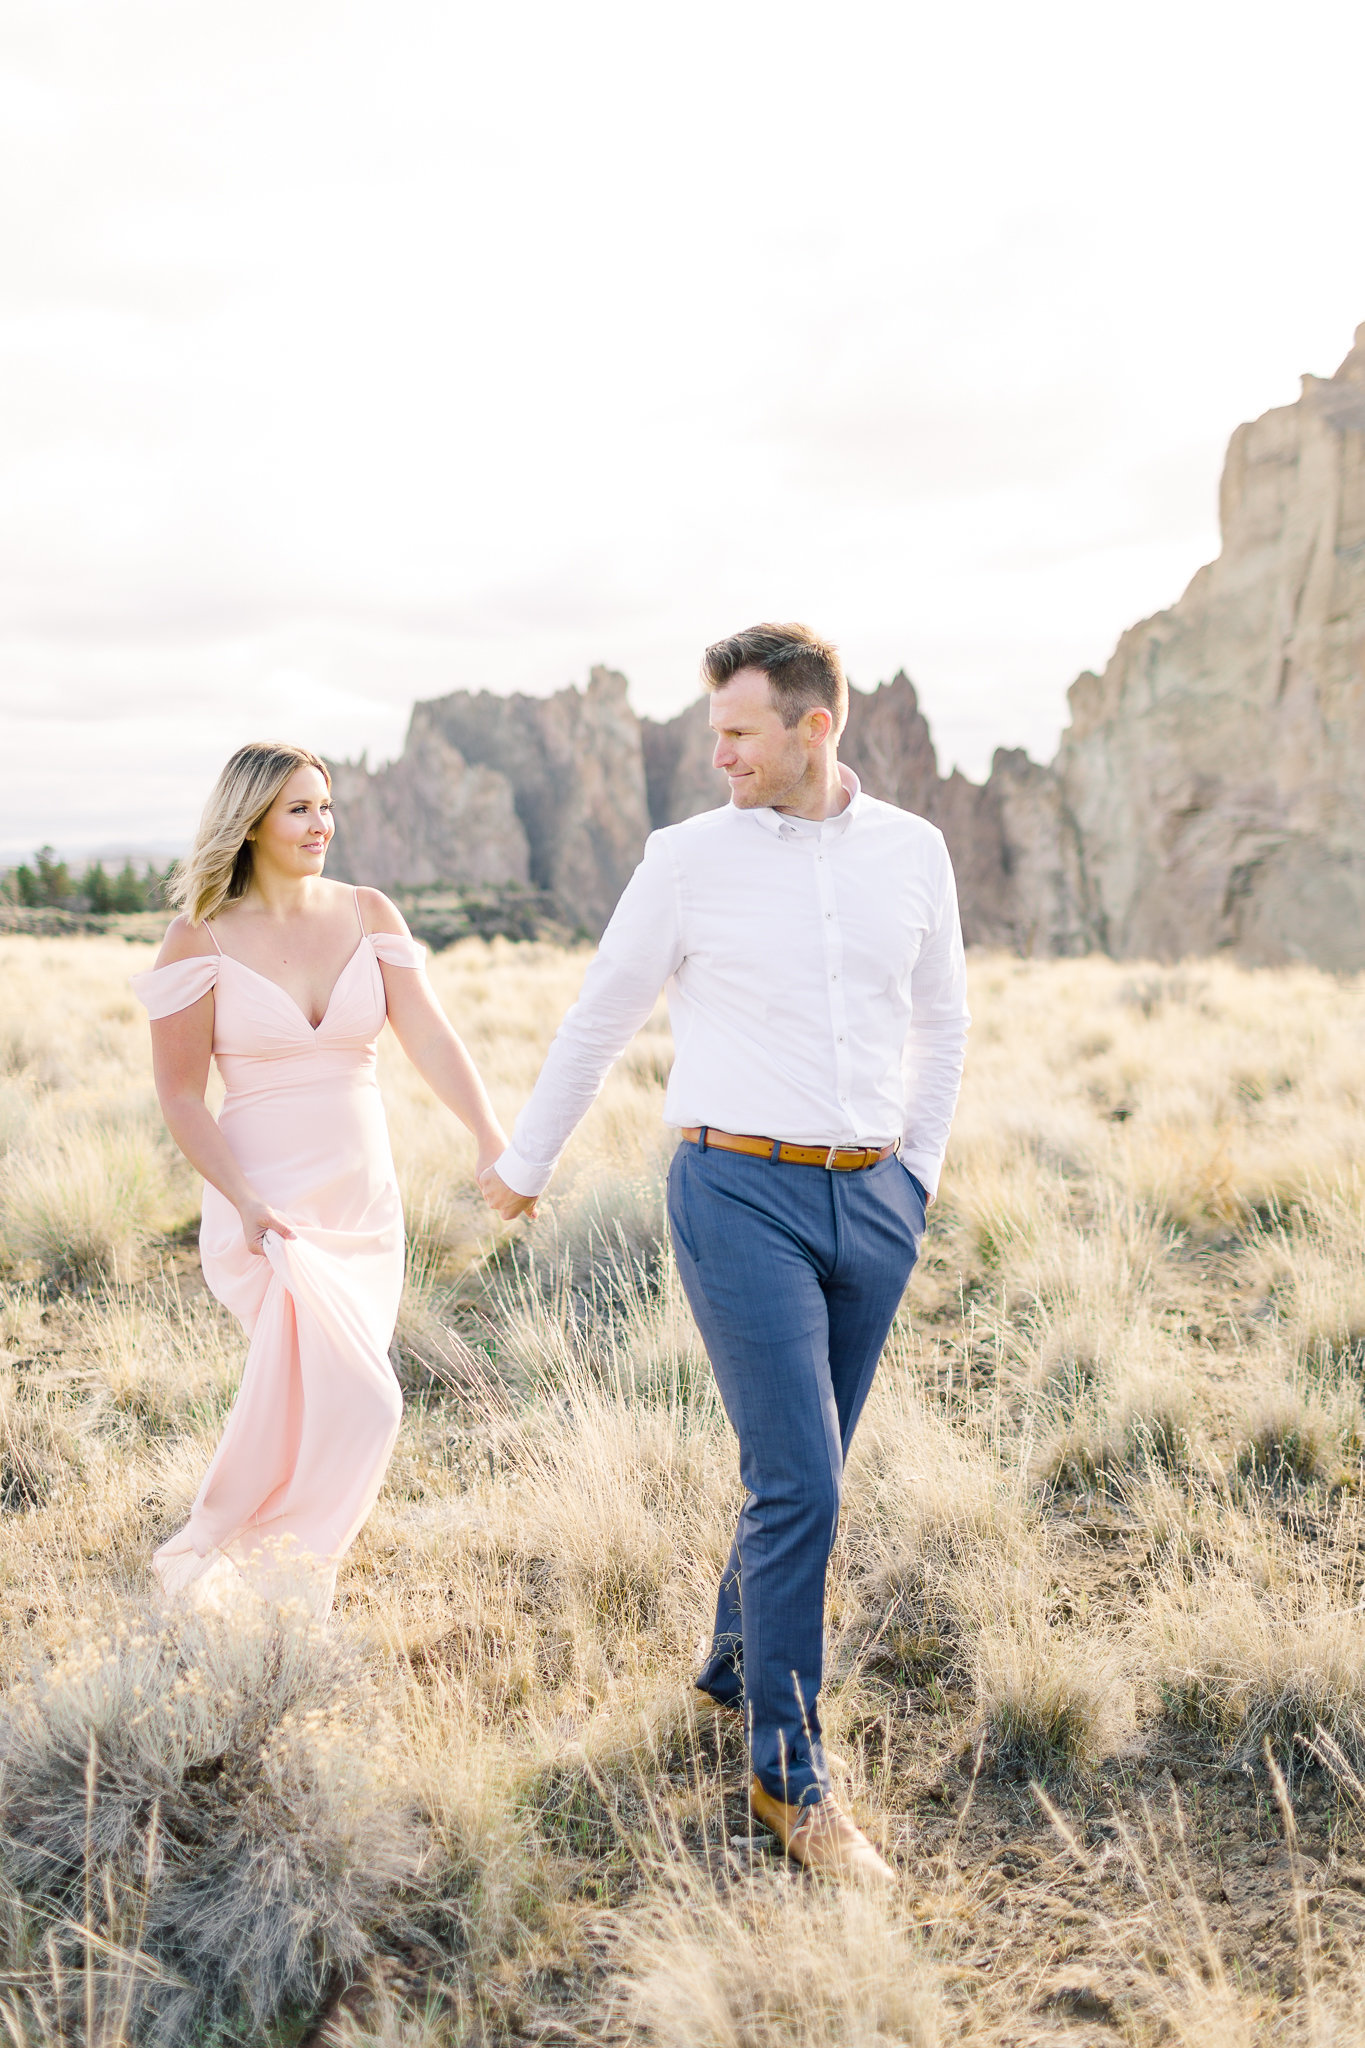 photographe-seance-anniversaire-de-mariage-smith-rock-state-park-oregon-lisa-renault-photographie-wedding-anniversary-session-photographer-49